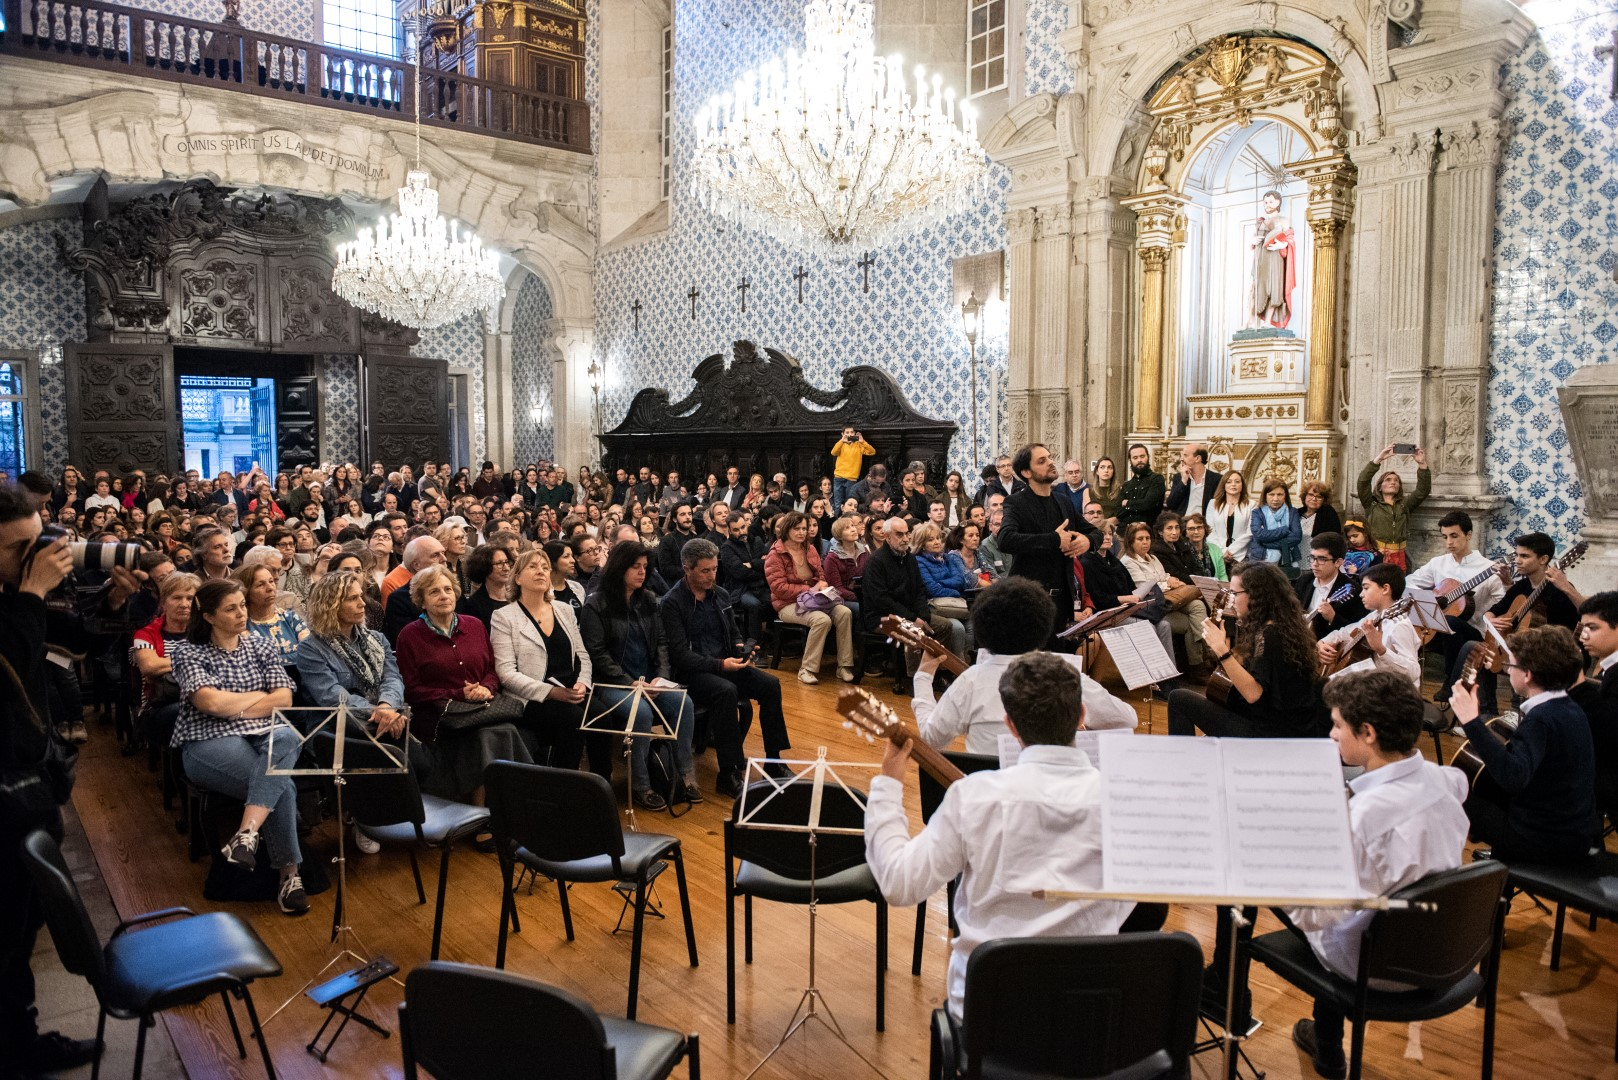 http://www.mmipo.pt/assets/misc/Not%C3%ADcias/2019/2019-03-30%20Concerto/RRI_9044.jpg